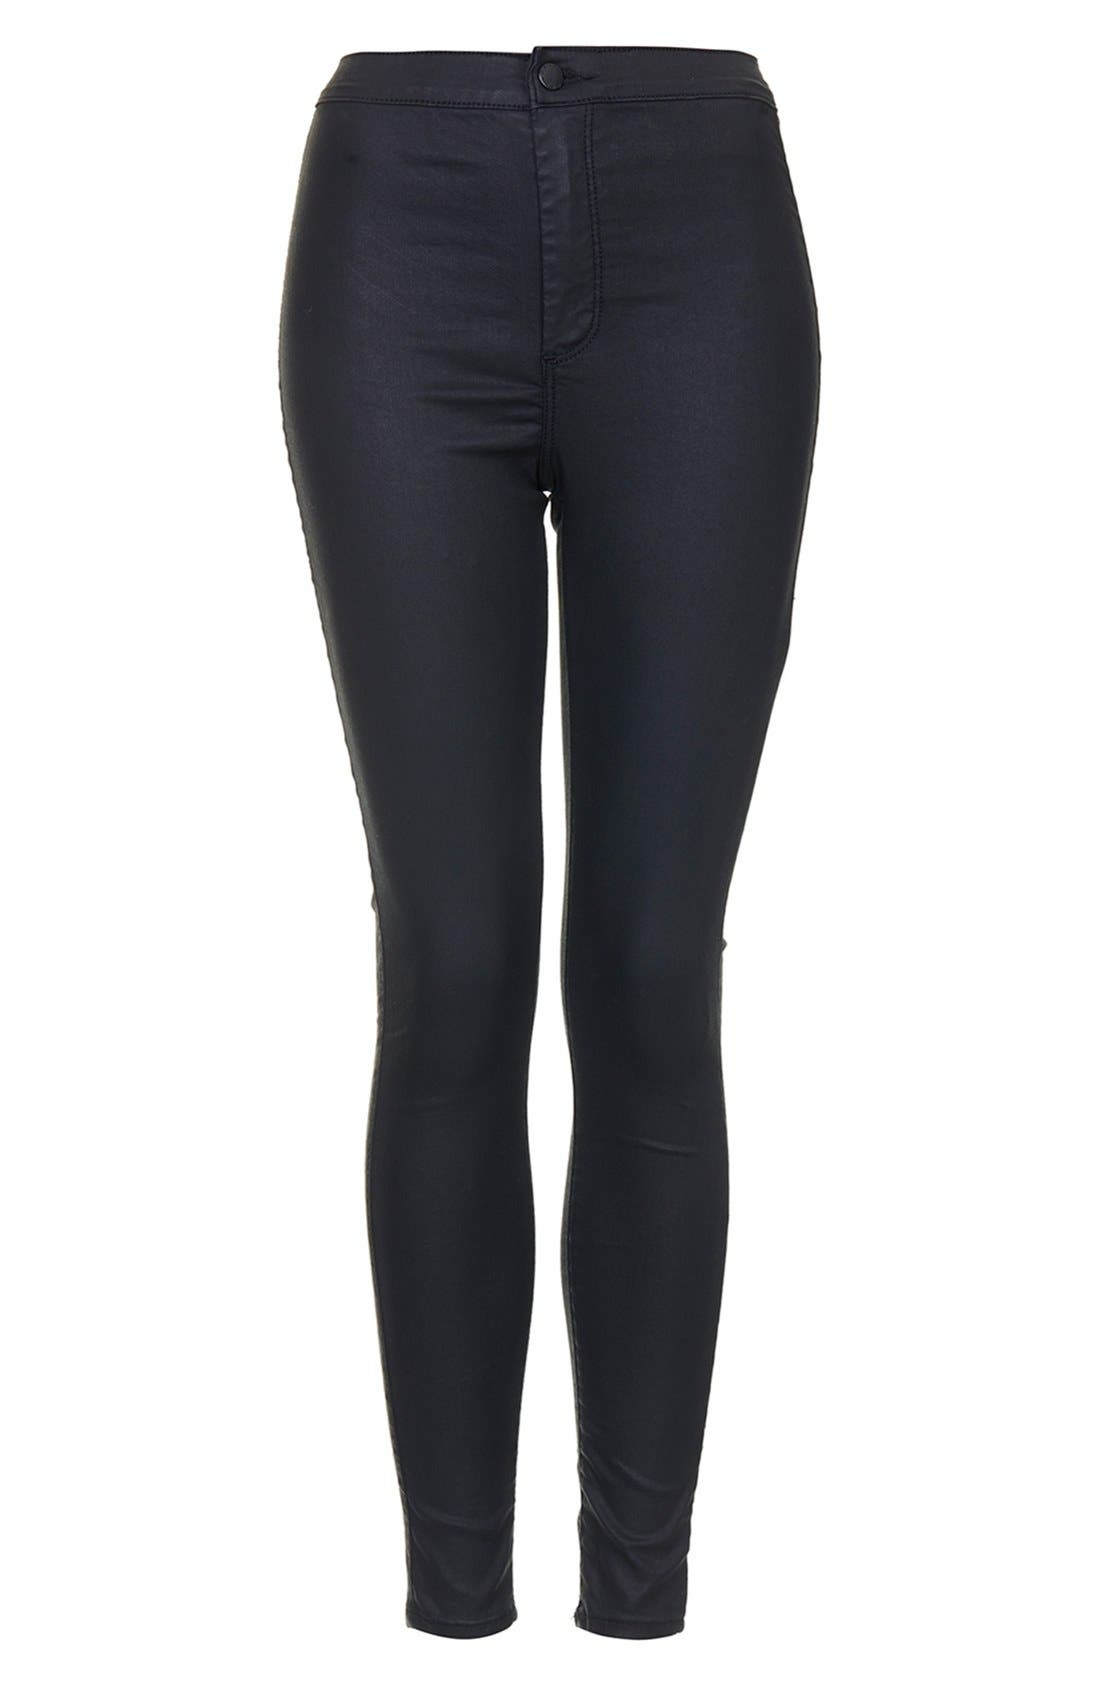 Alternate Image 3  - Topshop Moto 'Joni' Coated Skinny Jeans (Black)